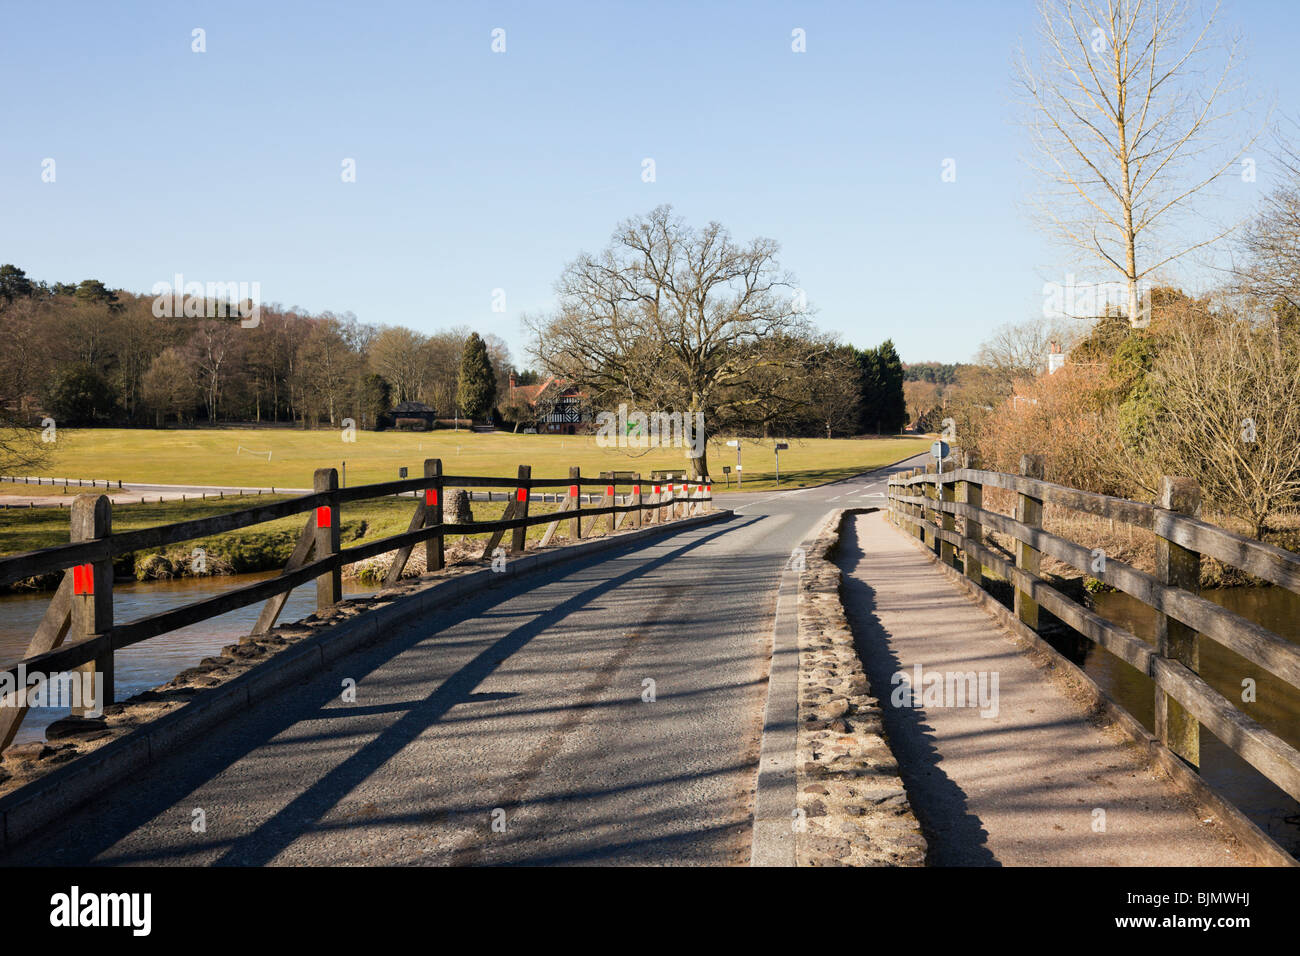 Tilford, Surrey, England, UK, Europe. View to village green along the ancient narrow bridge crossing the River Wey. - Stock Image